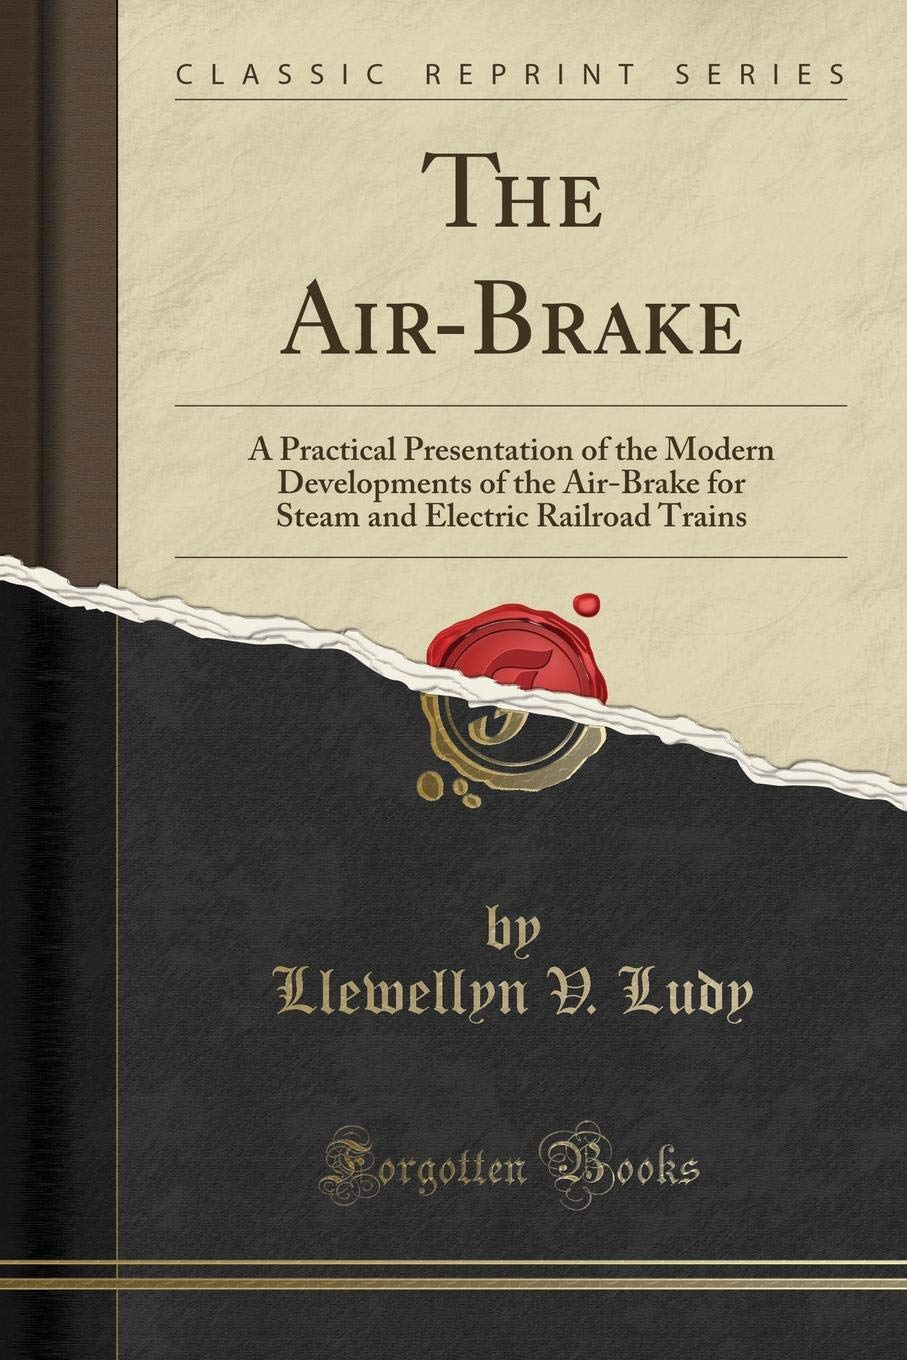 Download The Air-Brake: A Practical Presentation of the Modern Developments of the Air-Brake for Steam and Electric Railroad Trains (Classic Reprint) PDF